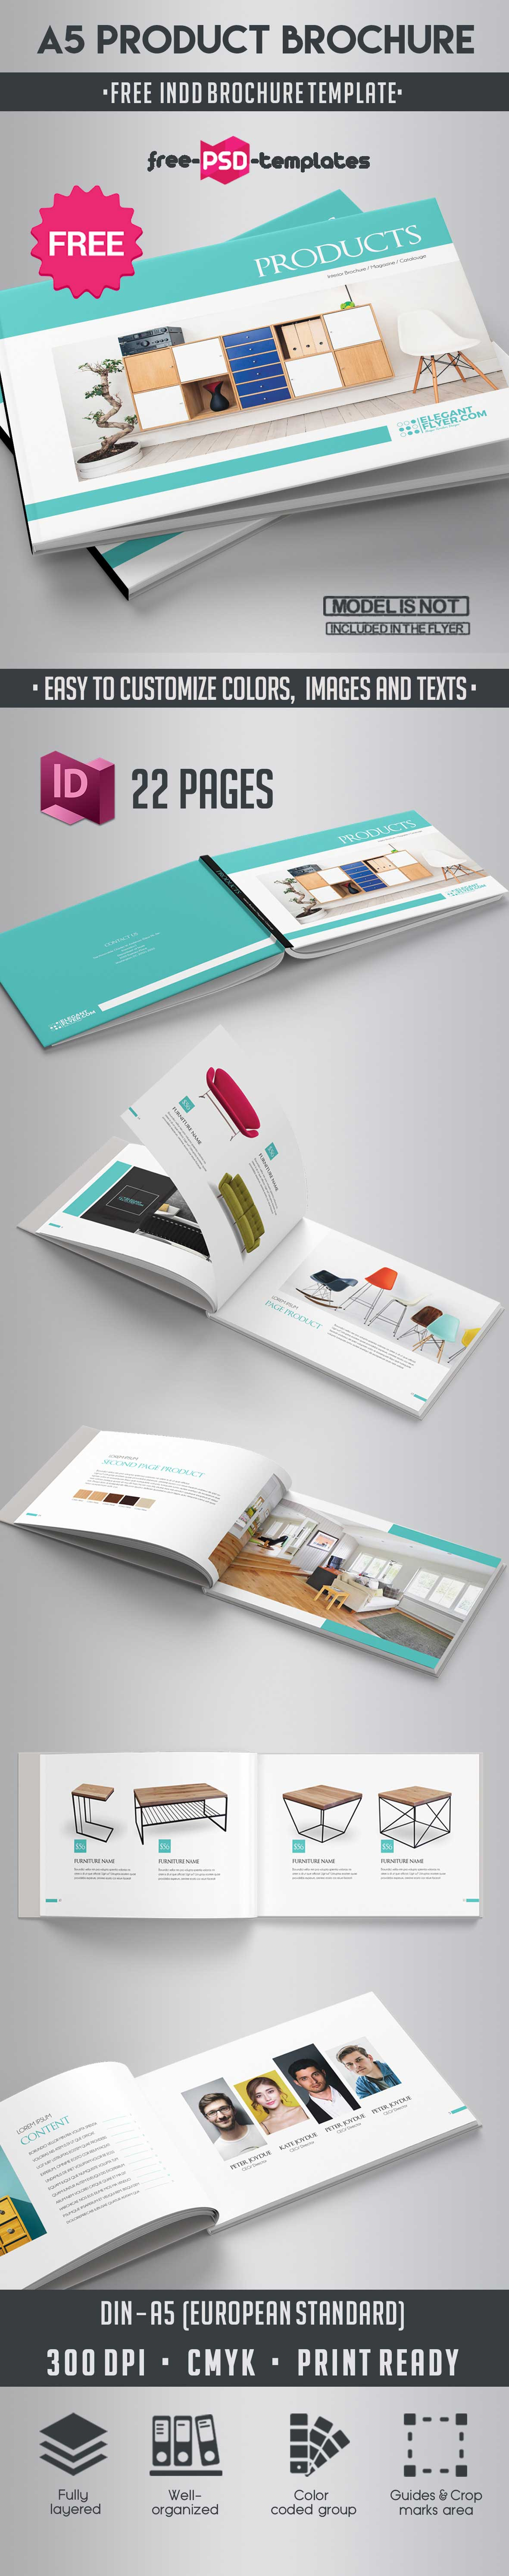 Free A5 Product Catalog Brochure Indd Template | Free PSD Templates